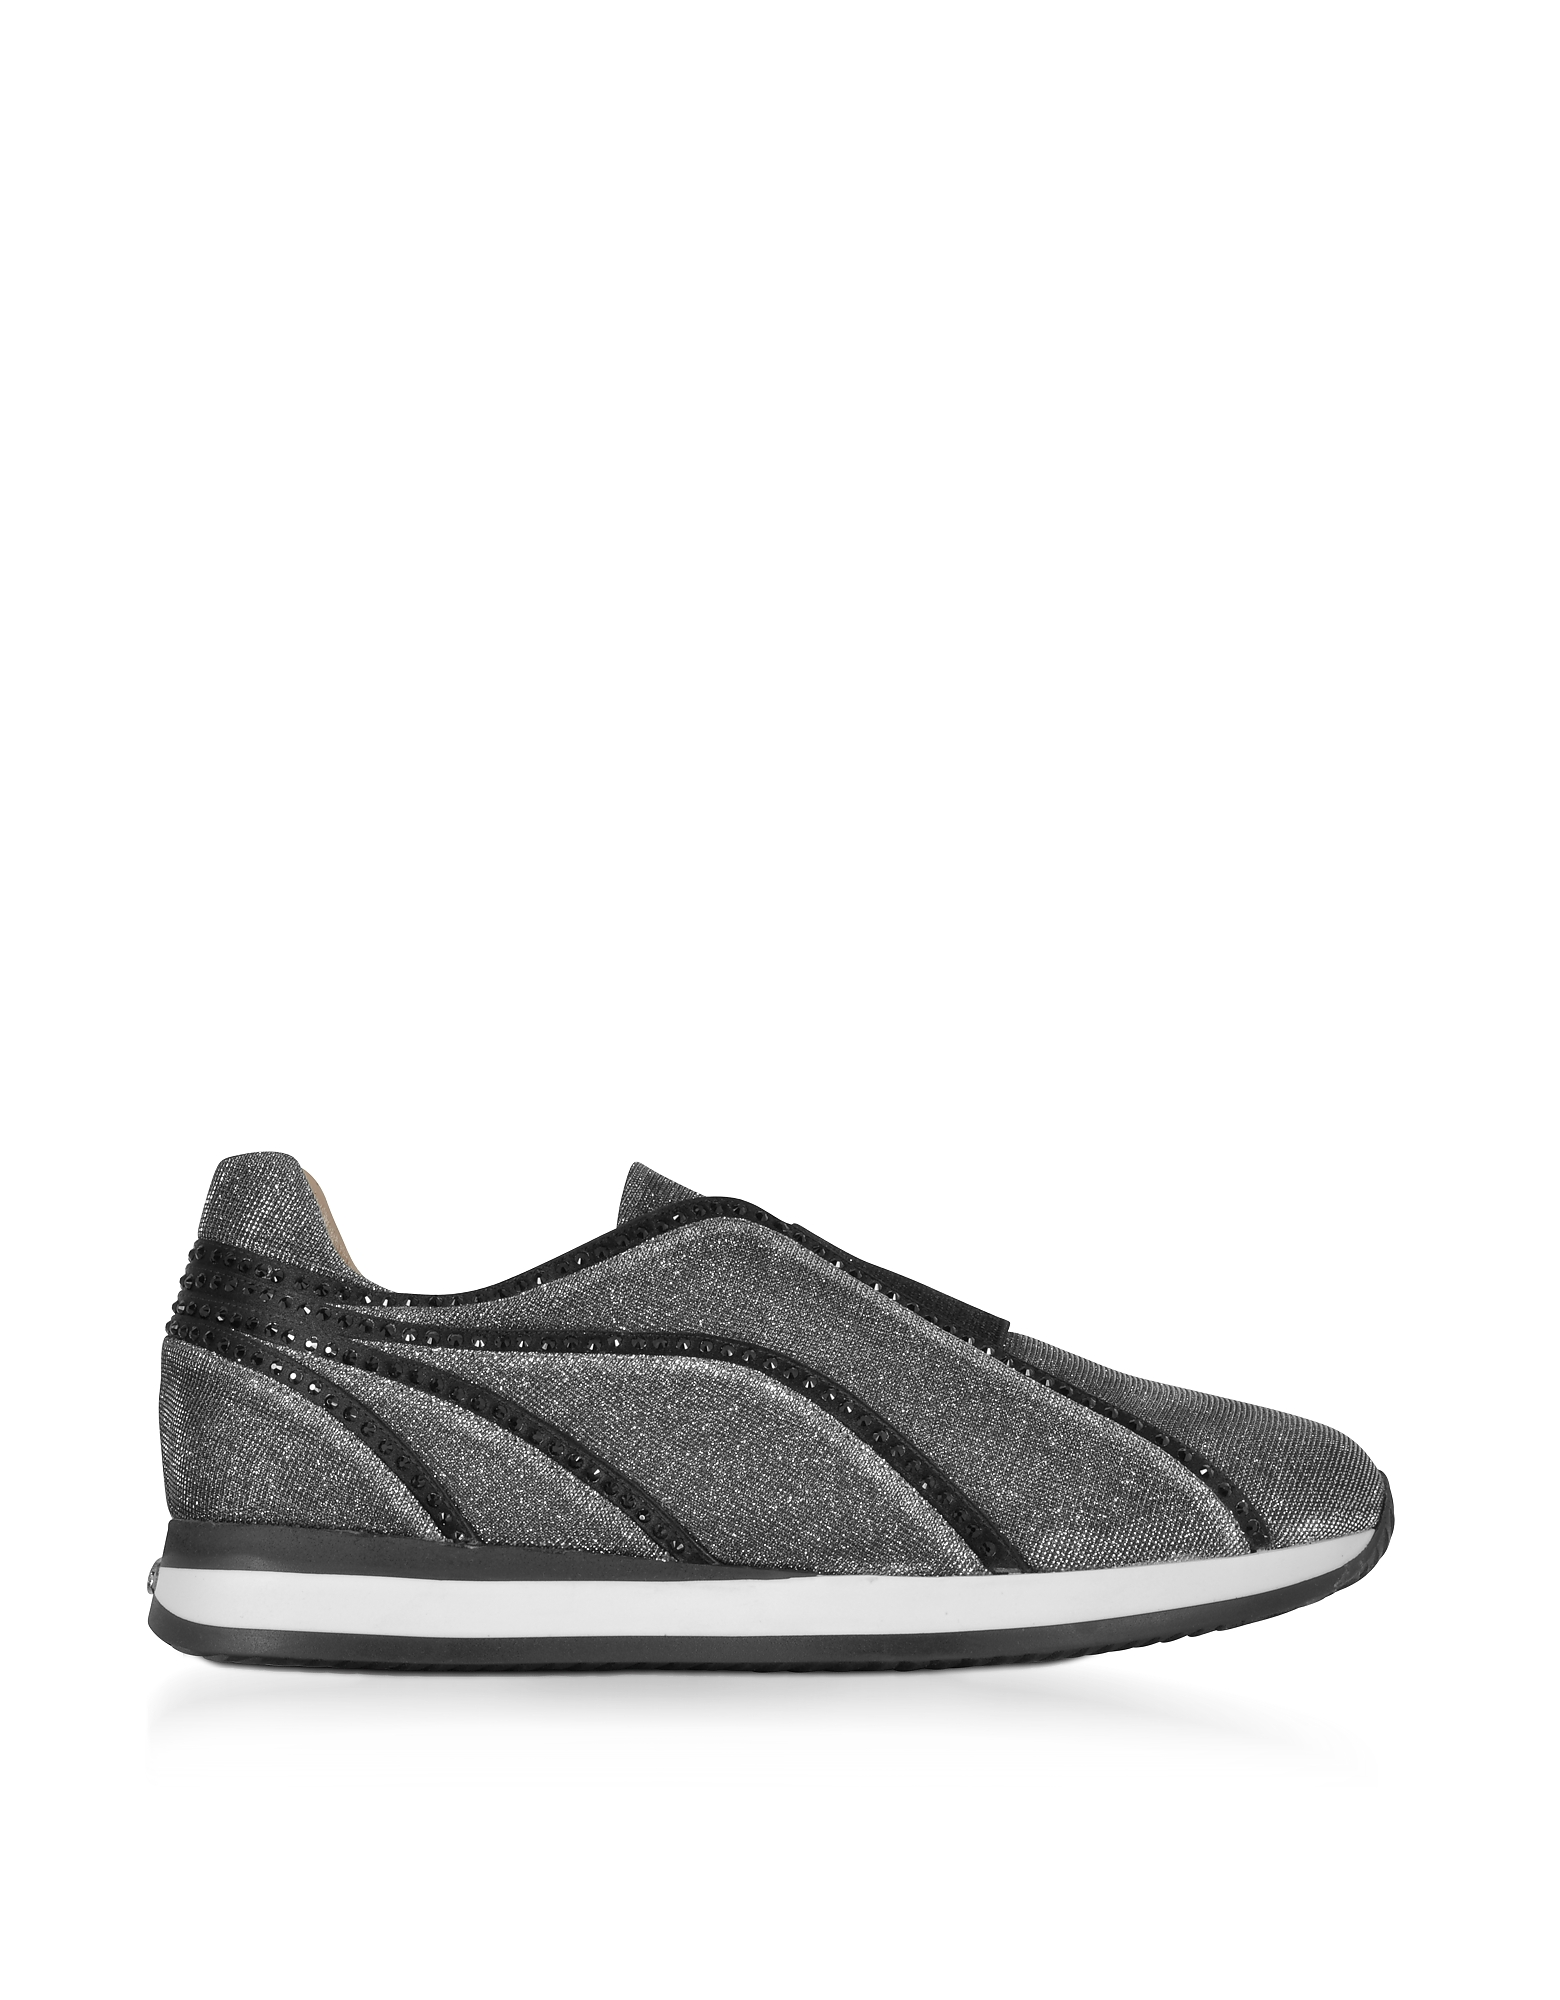 Rodo Shoes, Silver and Black Lurex Slip On Sneakers w/Black Studs